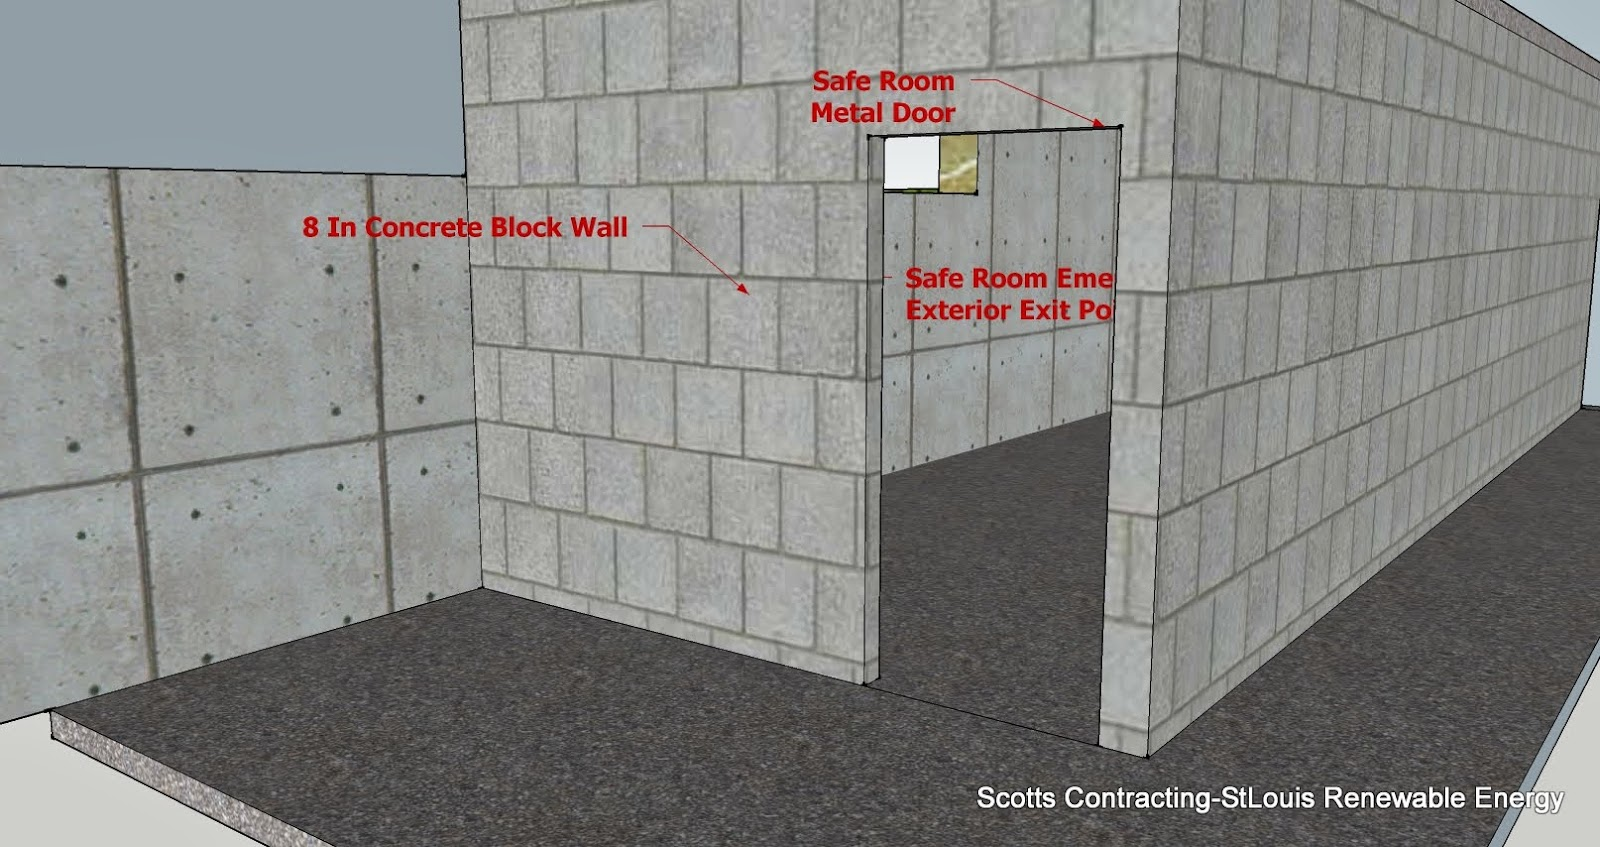 Stlouis renewable energy tornado safe room design for Safe rooms